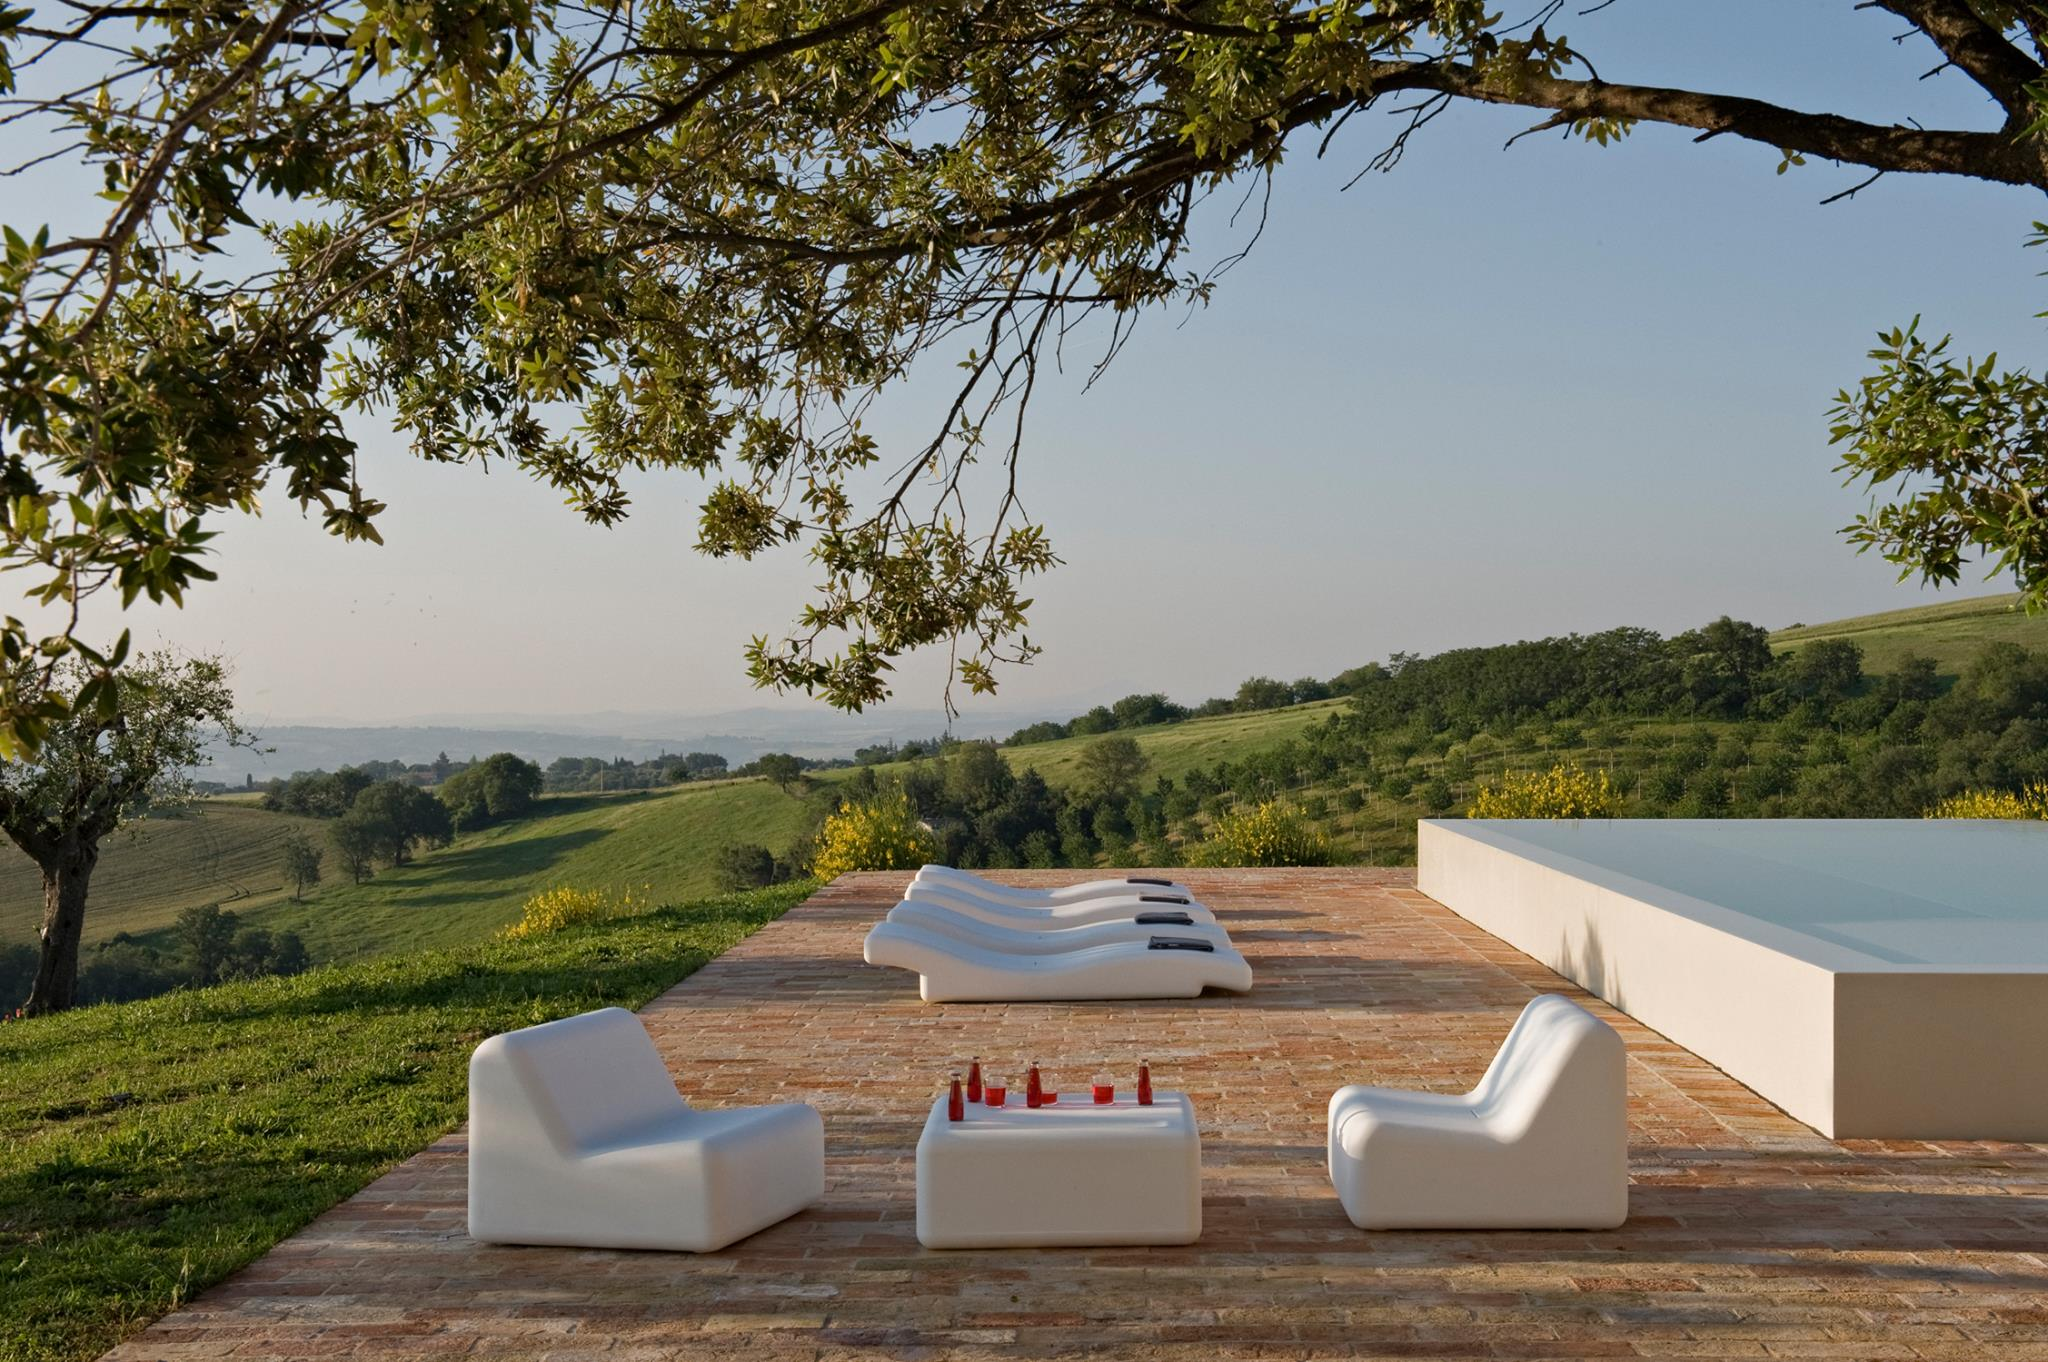 Casa Chaise Jardin Casa Olivi Nice2stay Luxury Design Villa